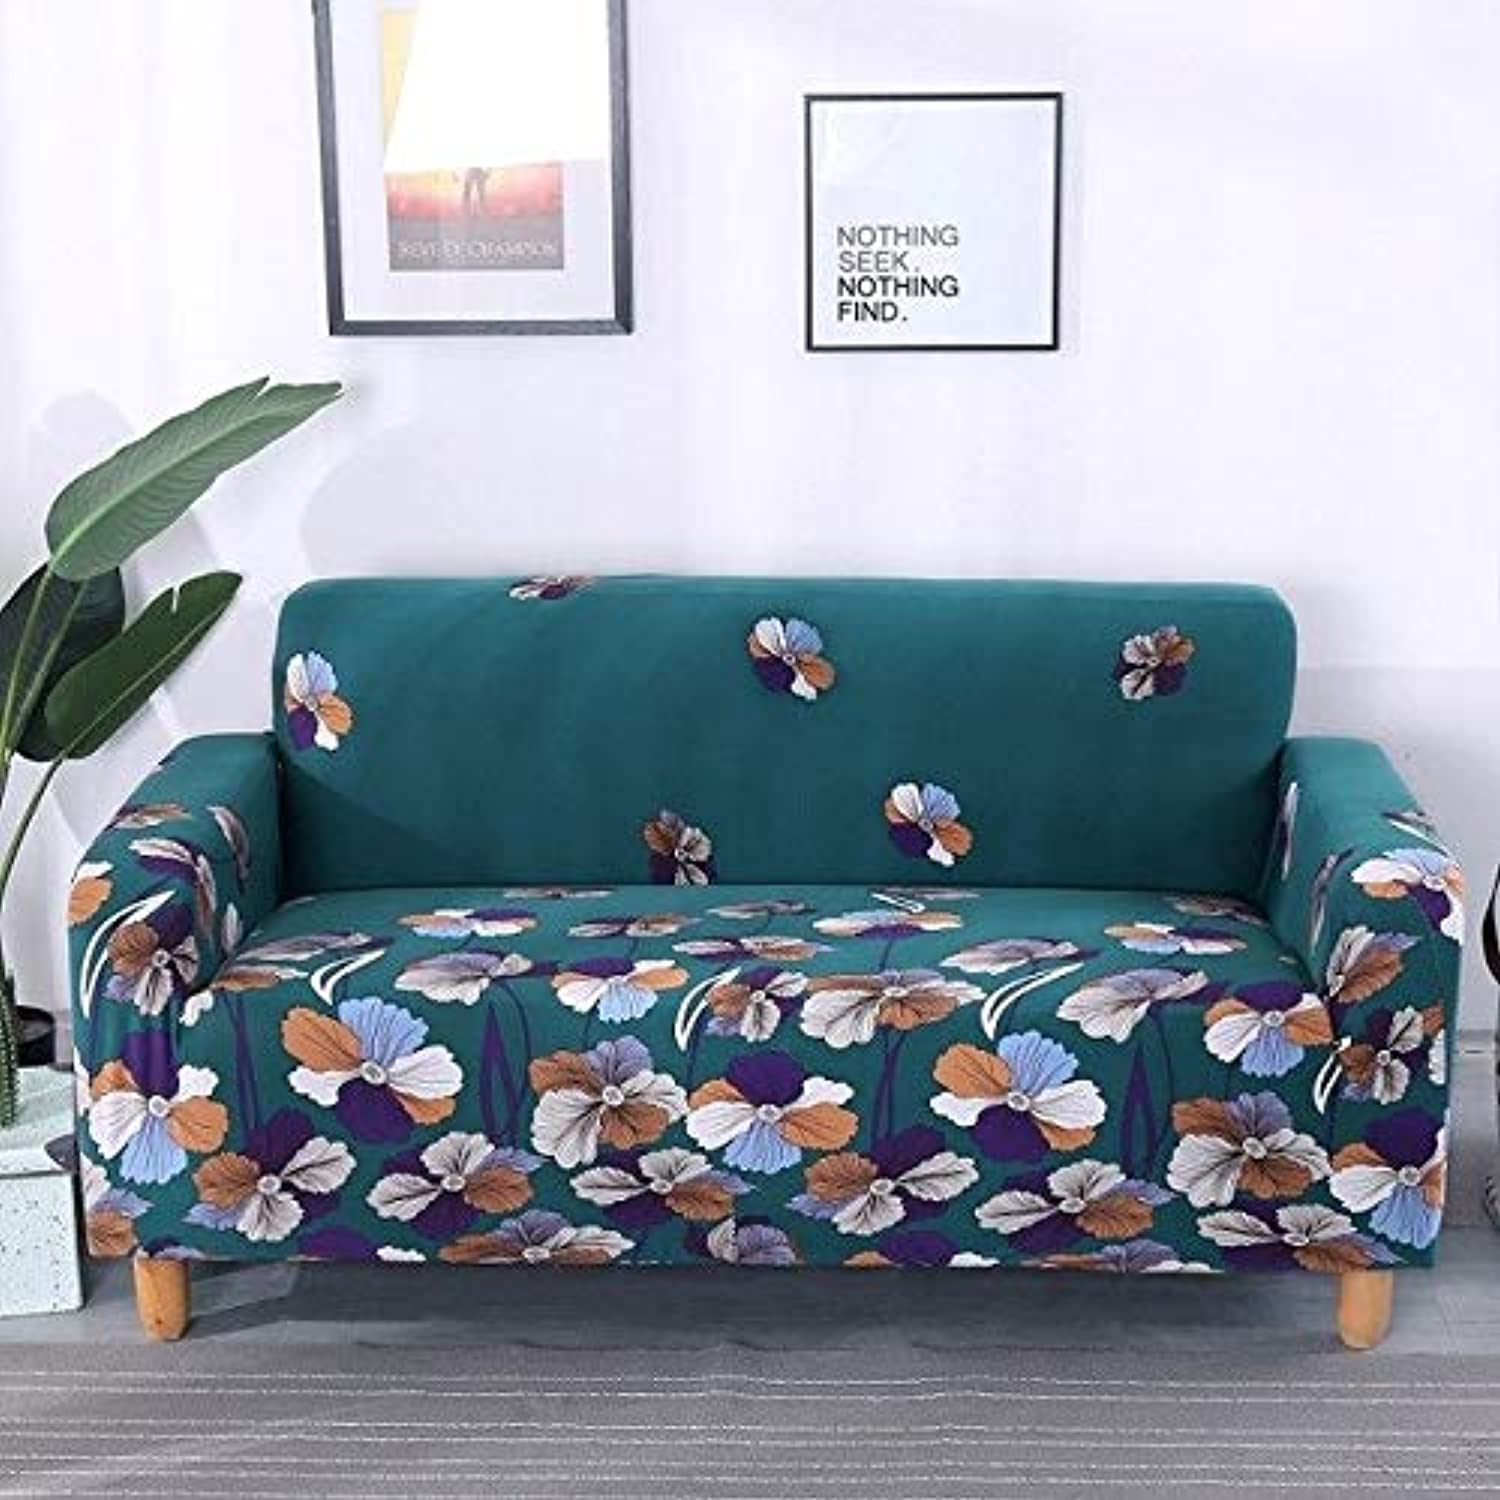 22-Styles Sofa Cover Sectional Capa de Sofa Covers Elastic Sofa Covers Flower Printed Slipcover Couch Cover for Living Room   08, Single Seat